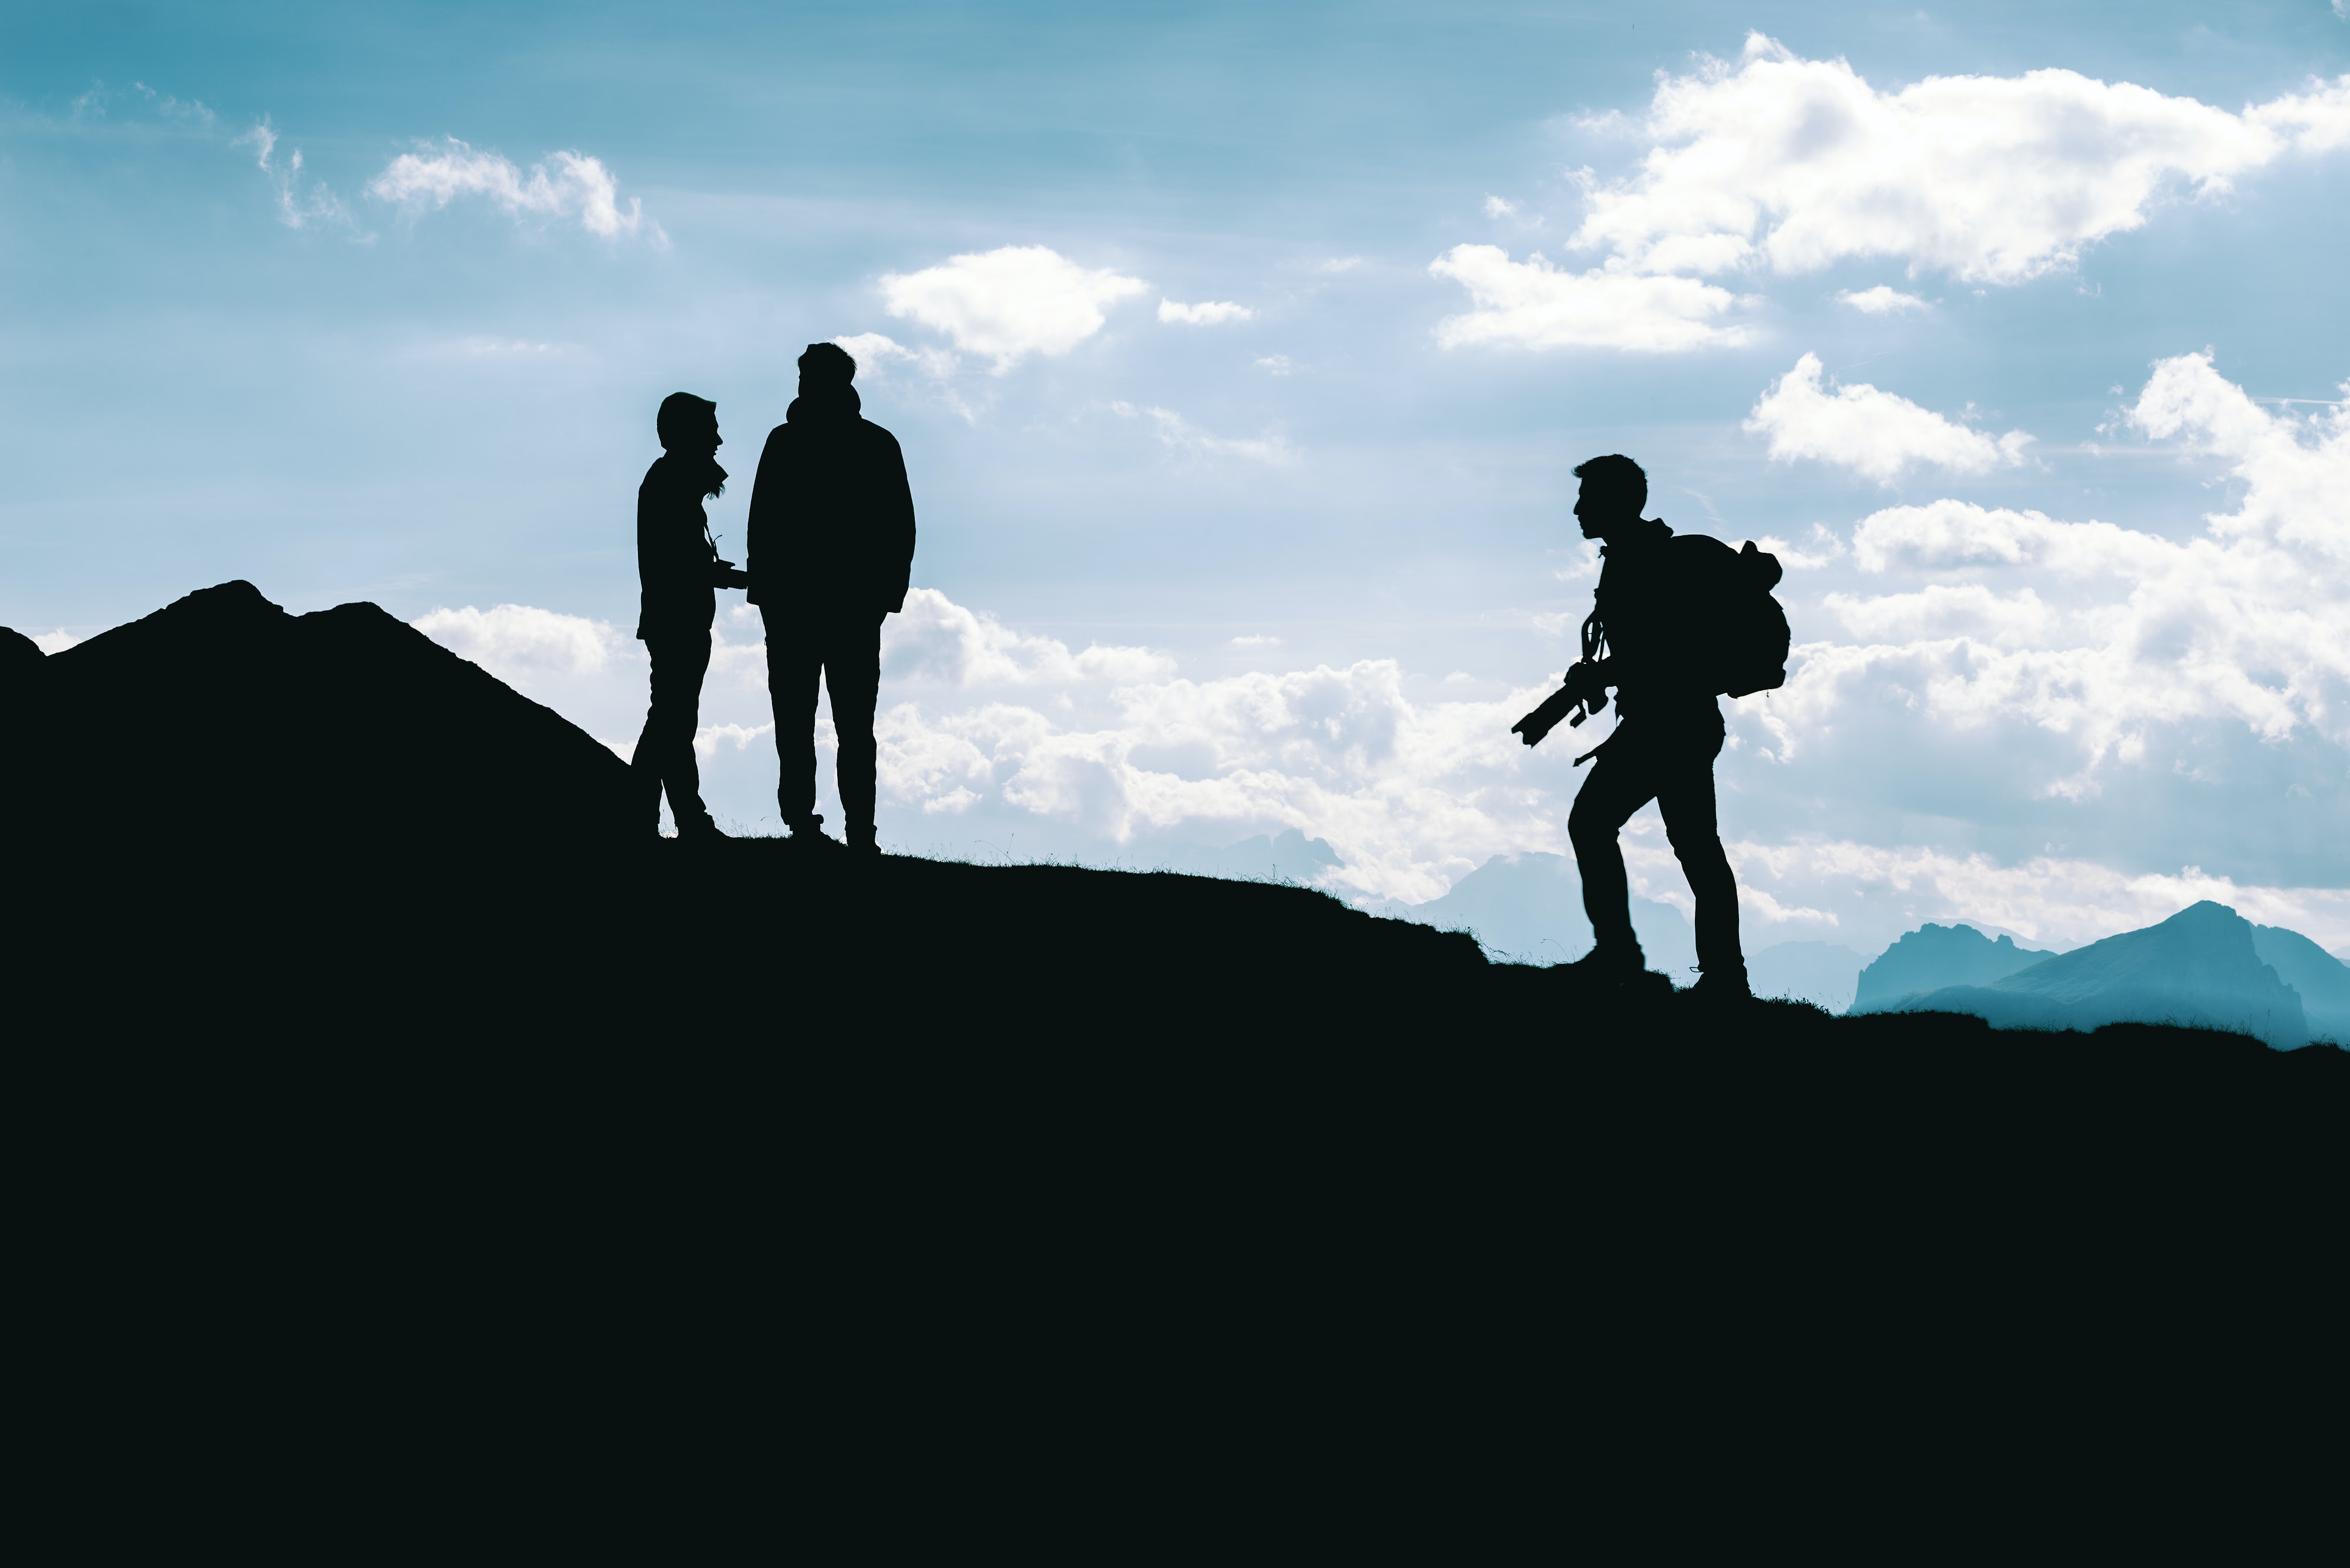 silhouette photo of three person standing on top of cliff